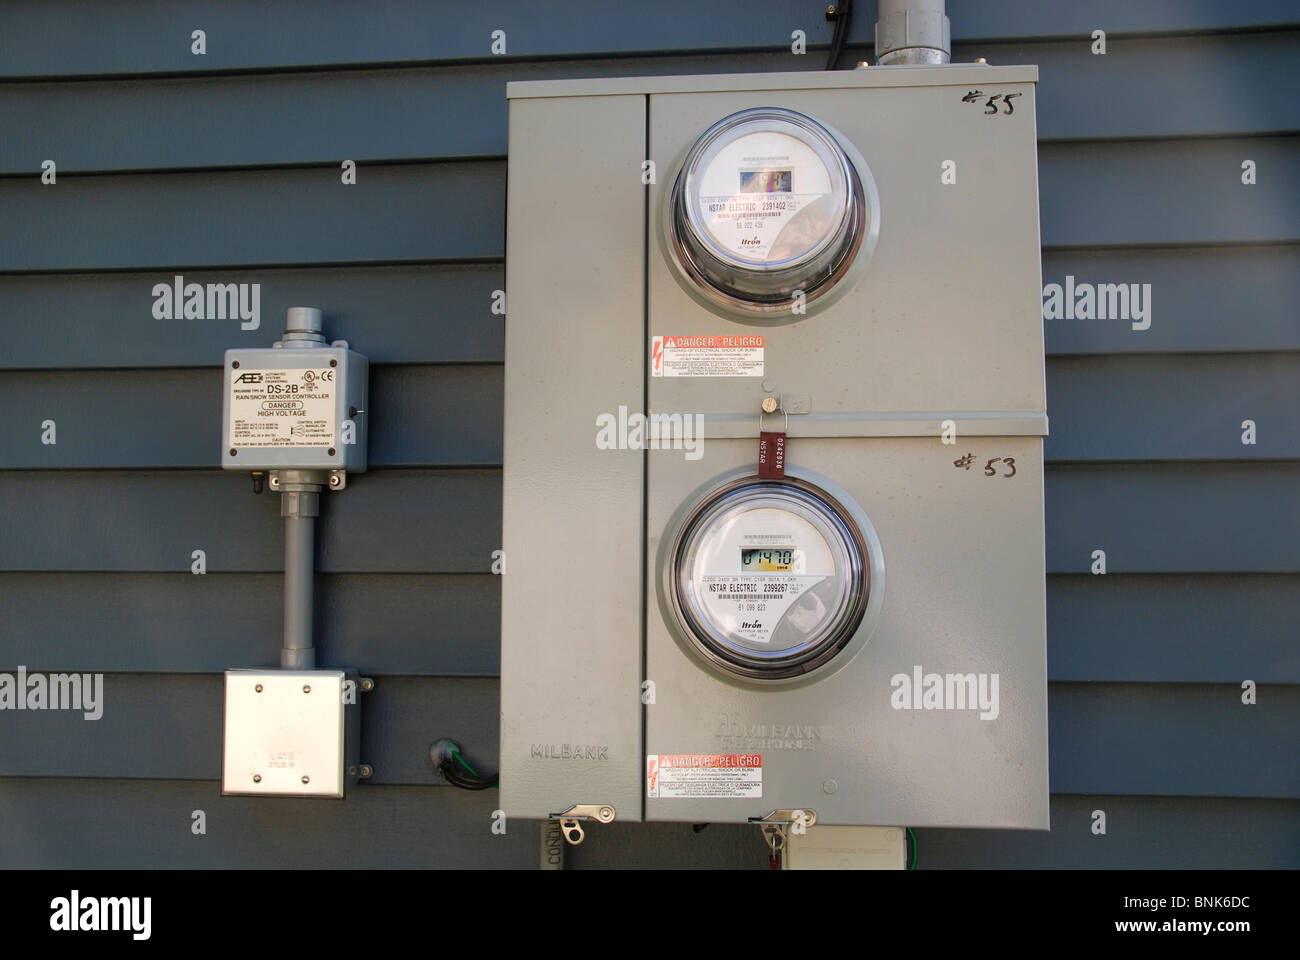 Electric meter outside residential condos - Stock Image